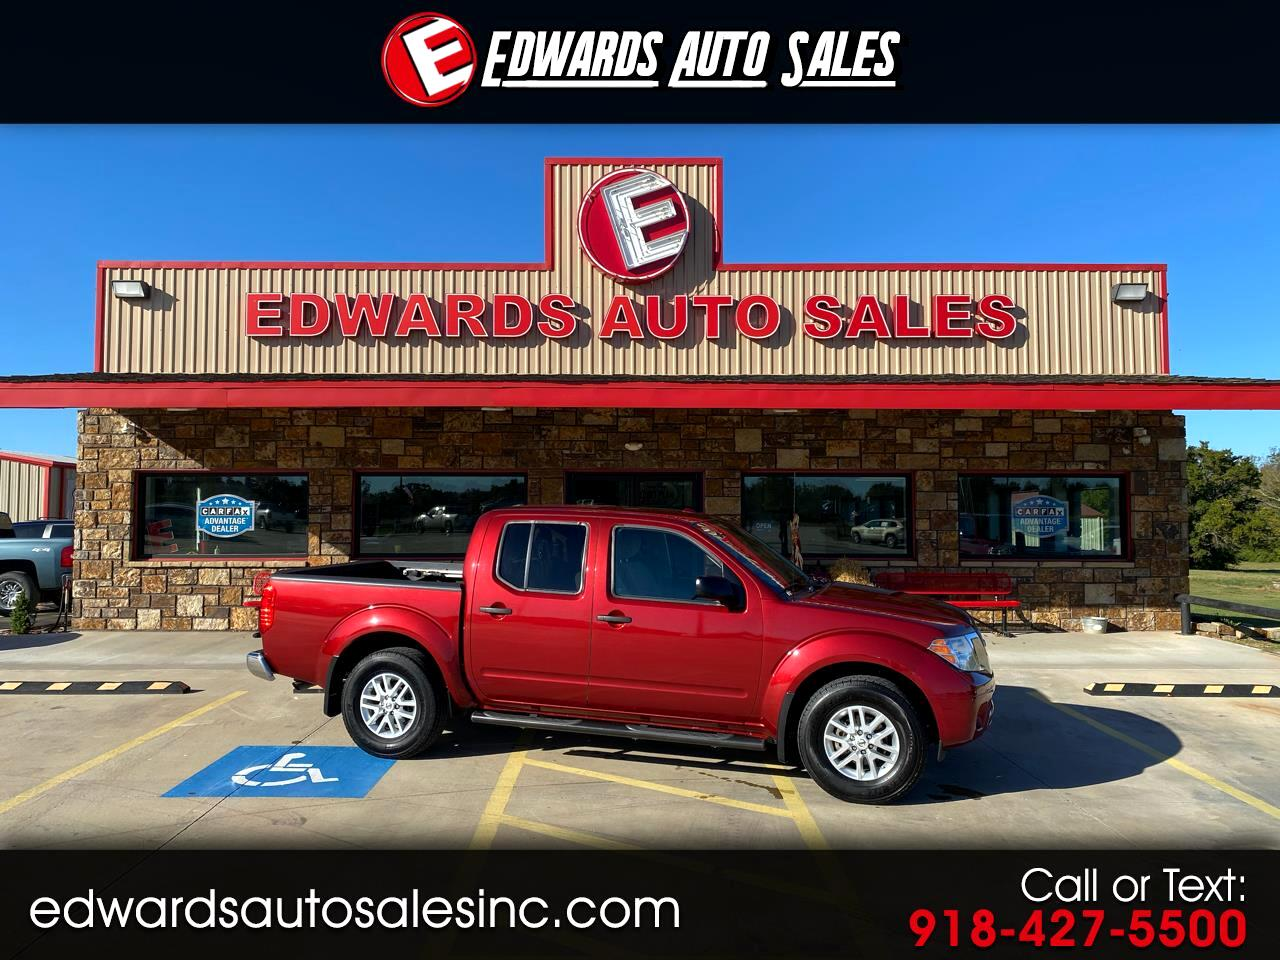 used 2016 nissan frontier 2wd crew cab swb auto sv for sale in roland ok 74954 edwards auto sales inc used 2016 nissan frontier 2wd crew cab